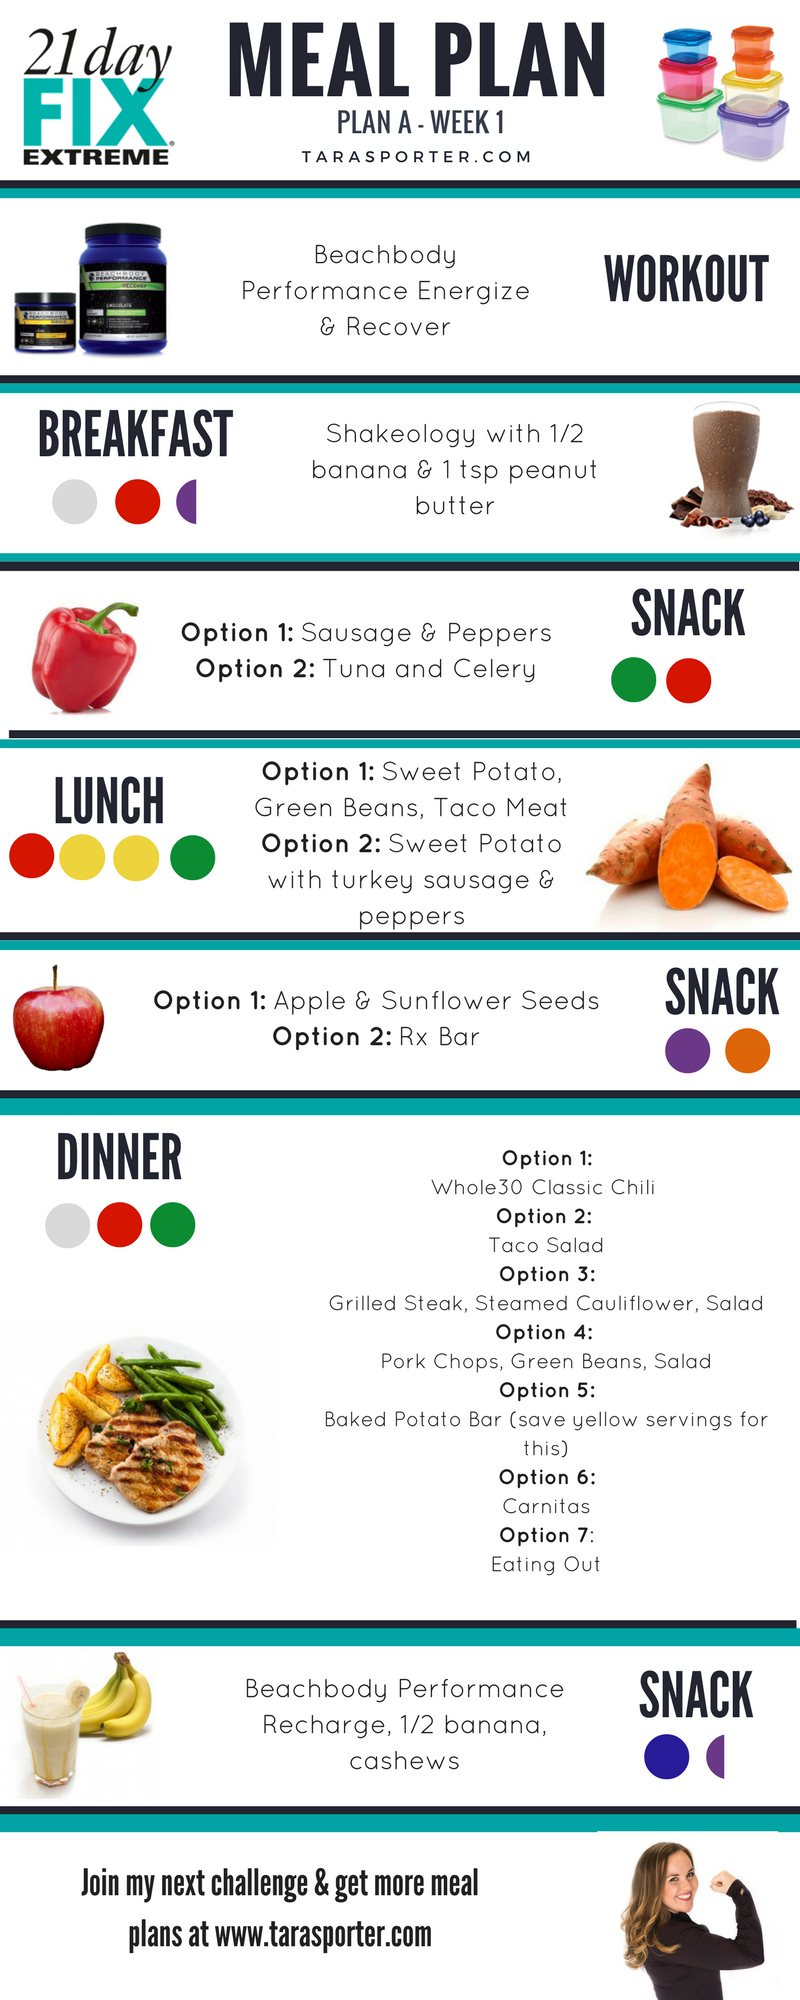 Idee Repas Jour De L An Pour 2.21 Day Fix Extreme Meal Ideas Meal Plan 21 Fix Day